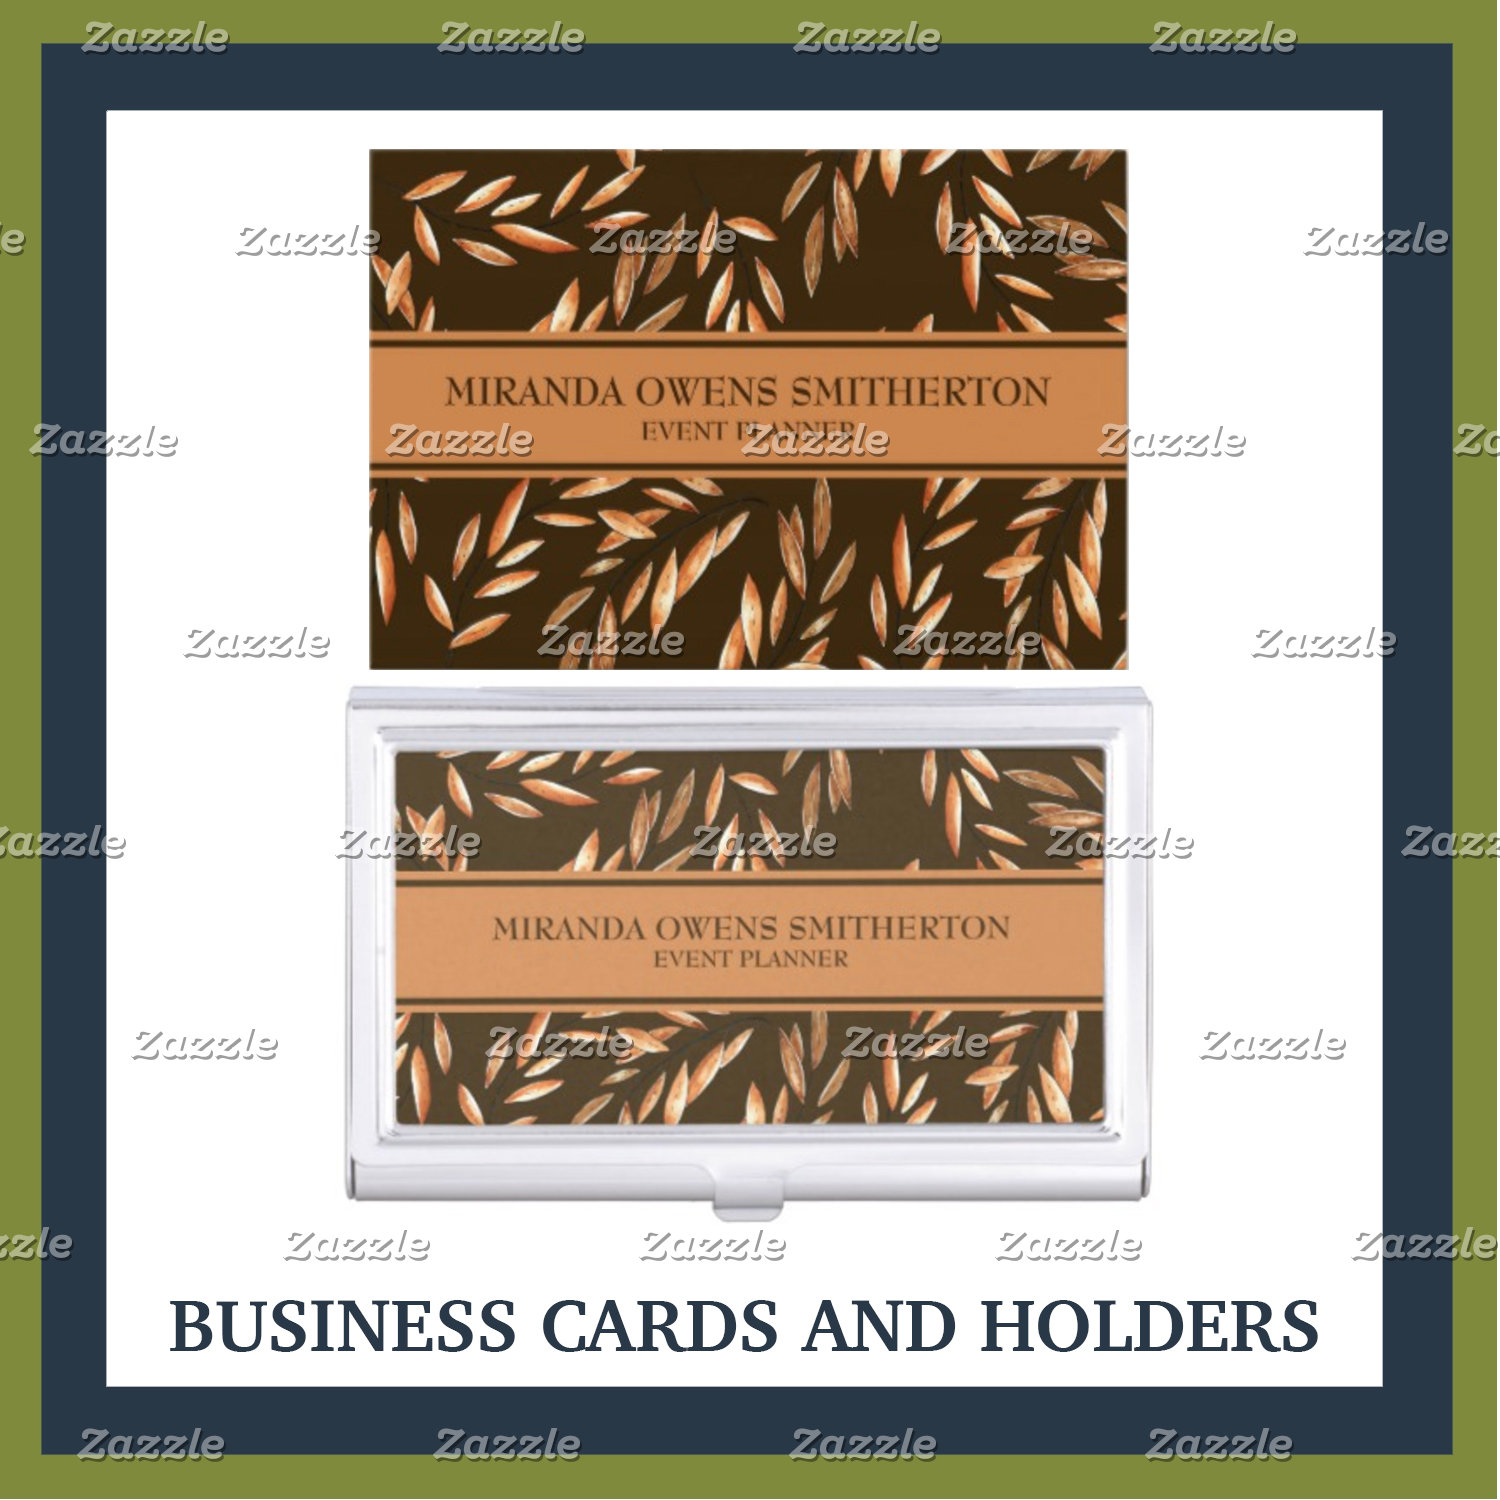 Business Cards and Business Card Holders